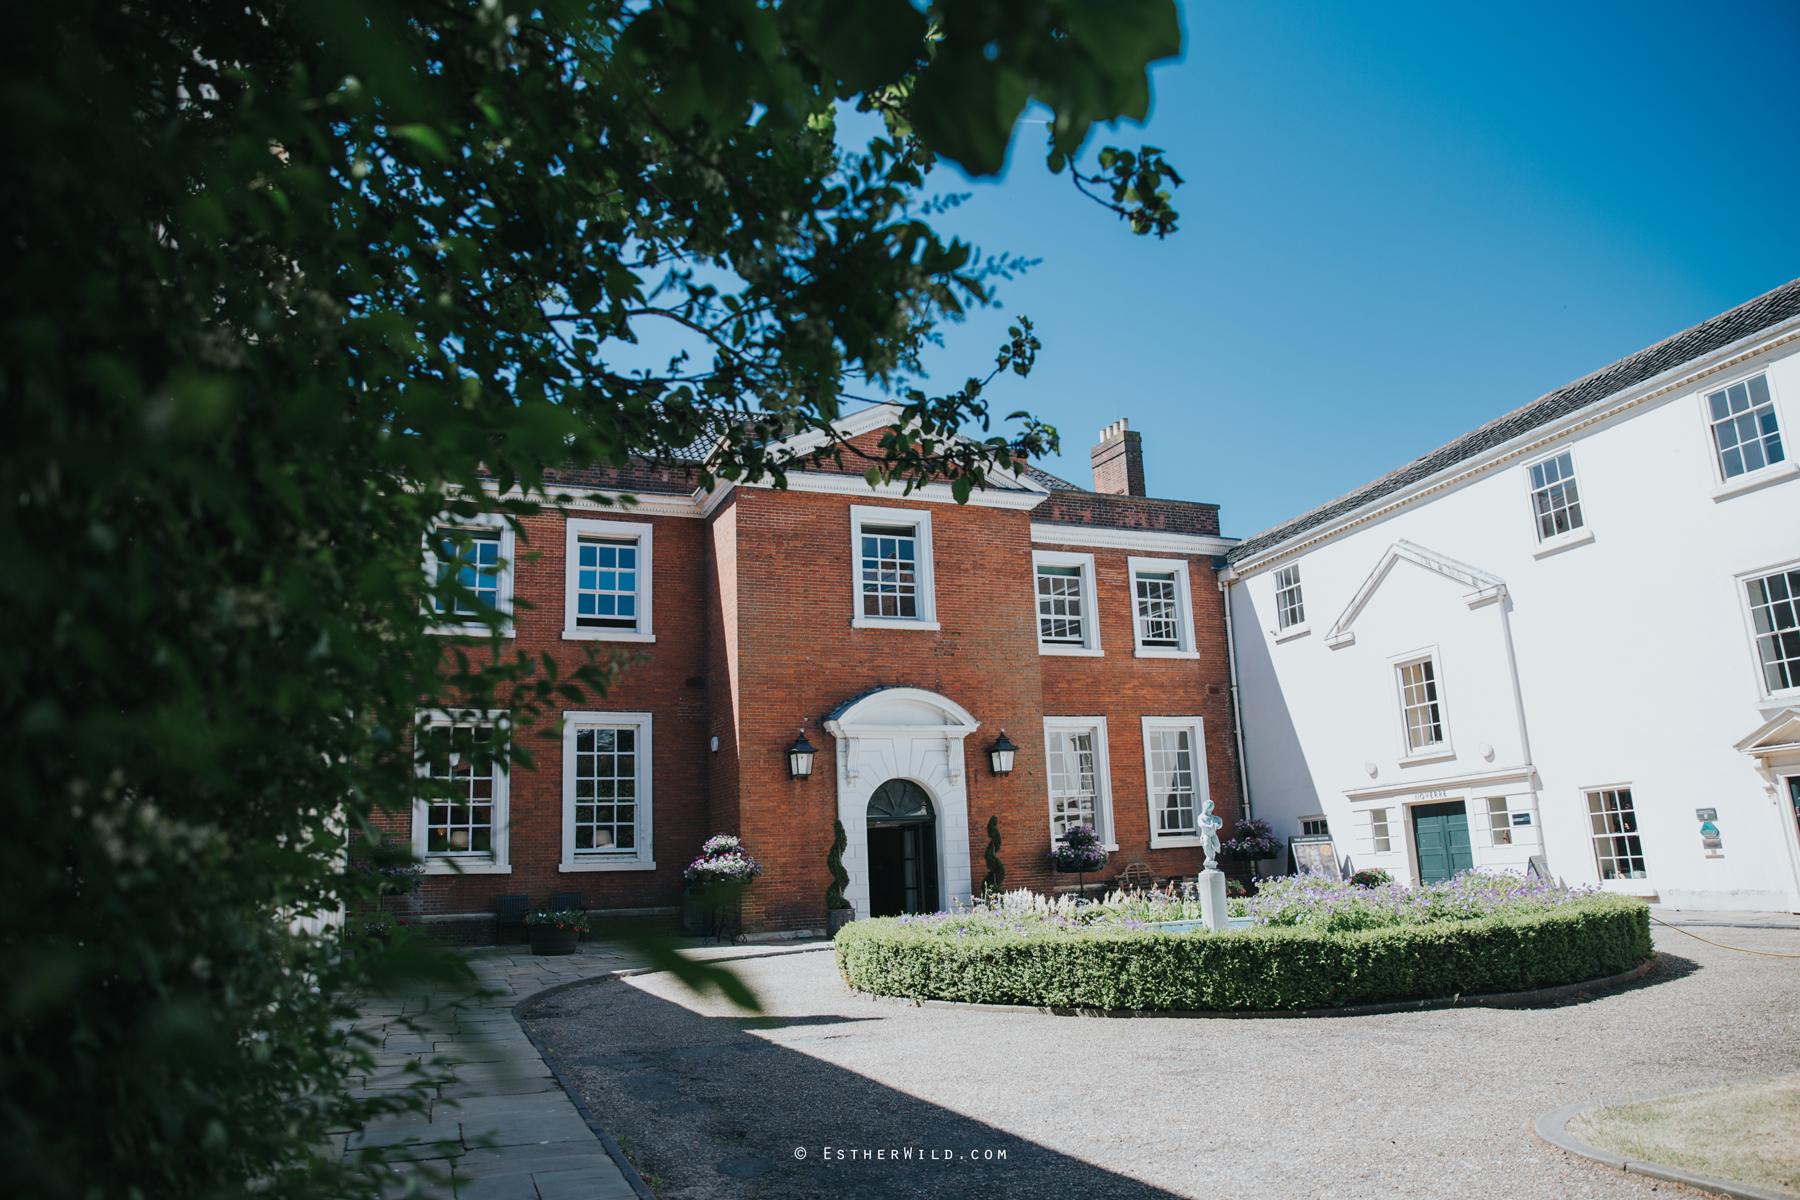 Assembly_House_Norwich_Norfolk_Esther_Wild_Photographer_IMG_0140.jpg